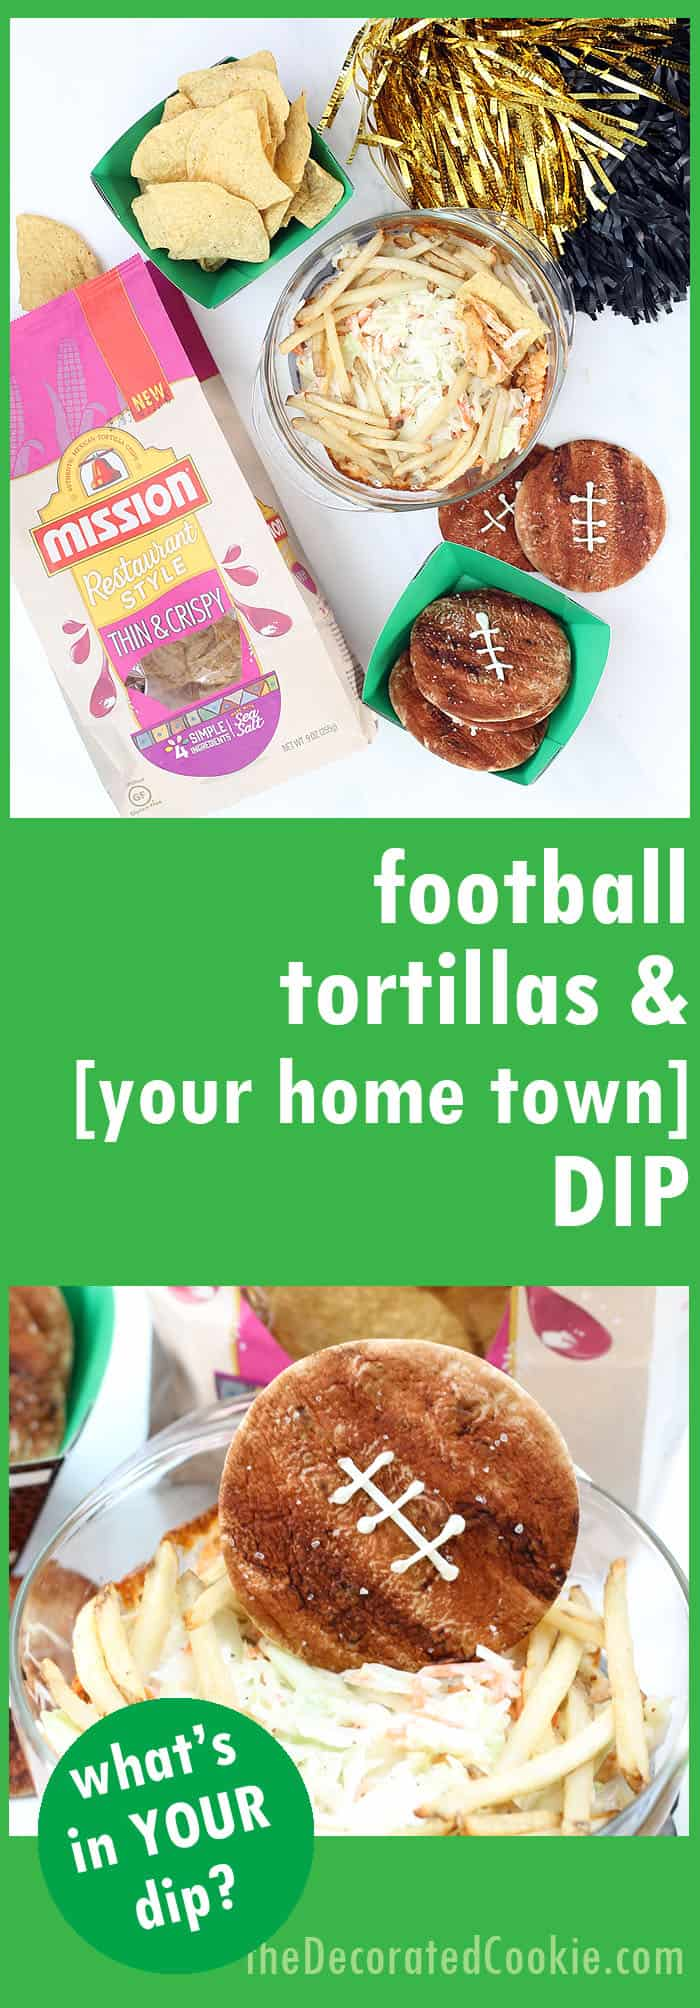 Football tortillas and Make your own home town dip! Mission® Tortillas + Mission® Tortilla Chips for your football viewing party. Check out the Prize Pack you can win!!! #MissionPartyKit #ad @MissionFoodUS